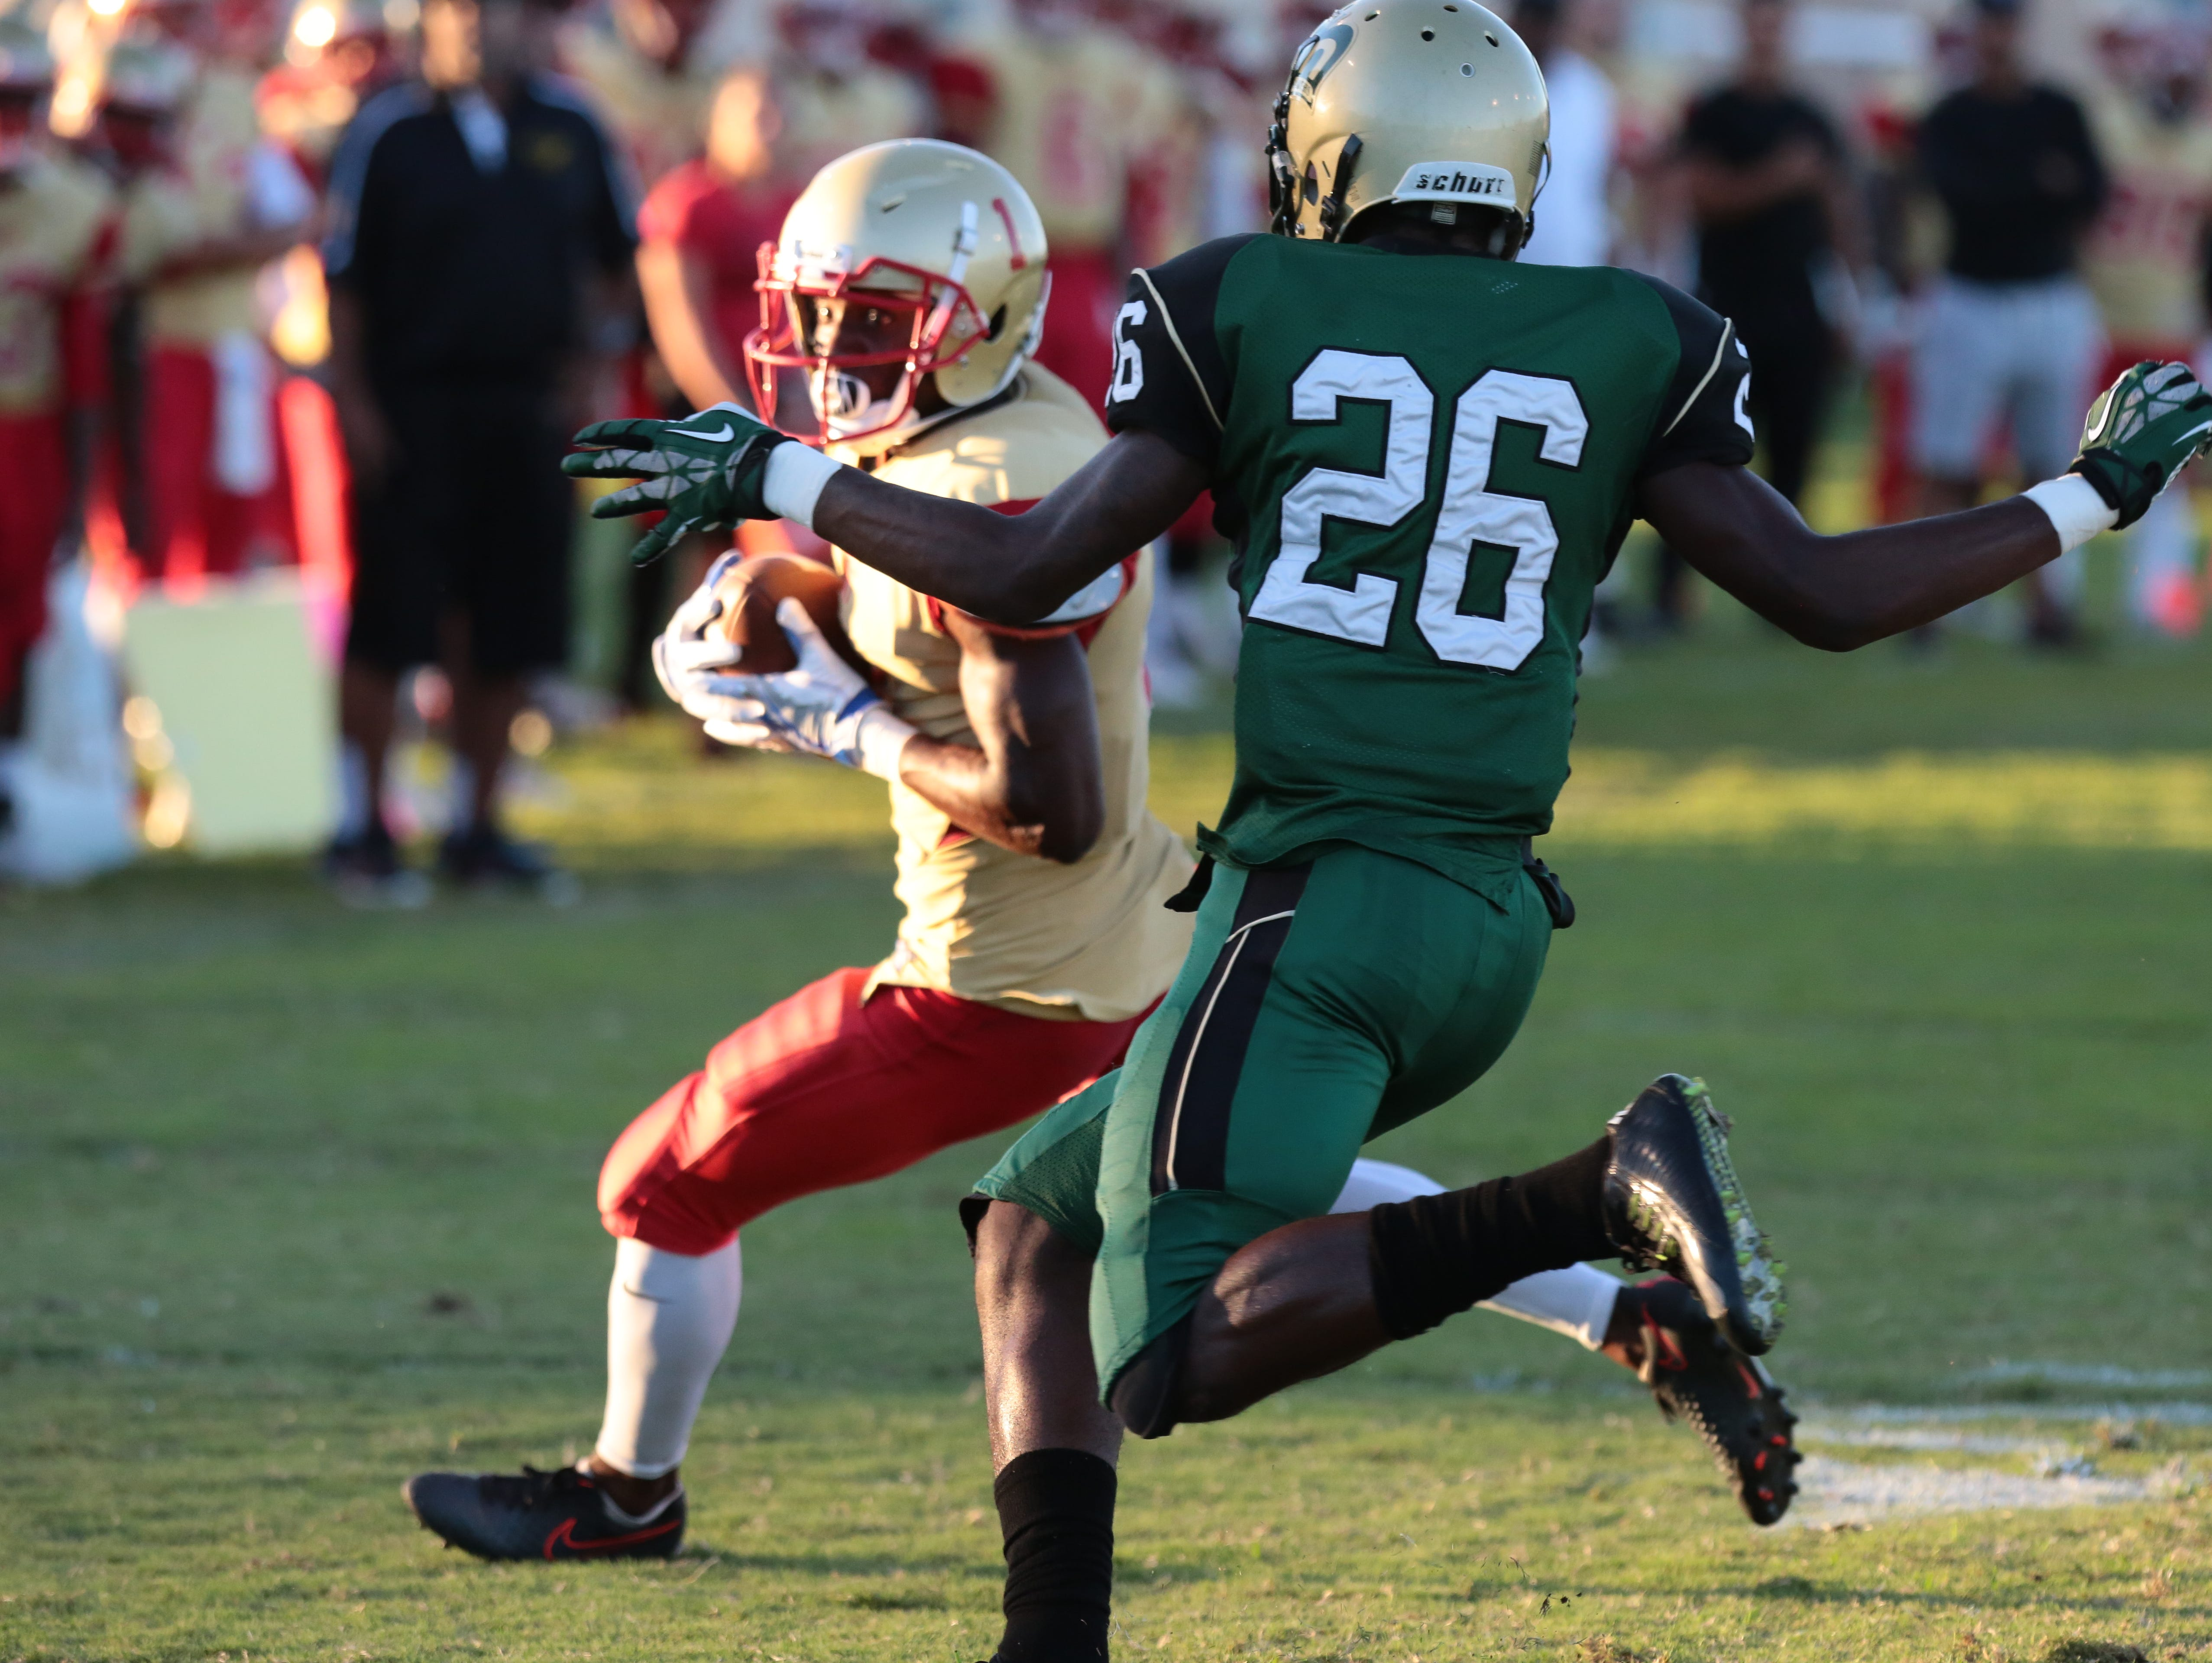 College of the Desert' and LA Valley football action on Saturday, September 10, 2016 in Palm Desert.